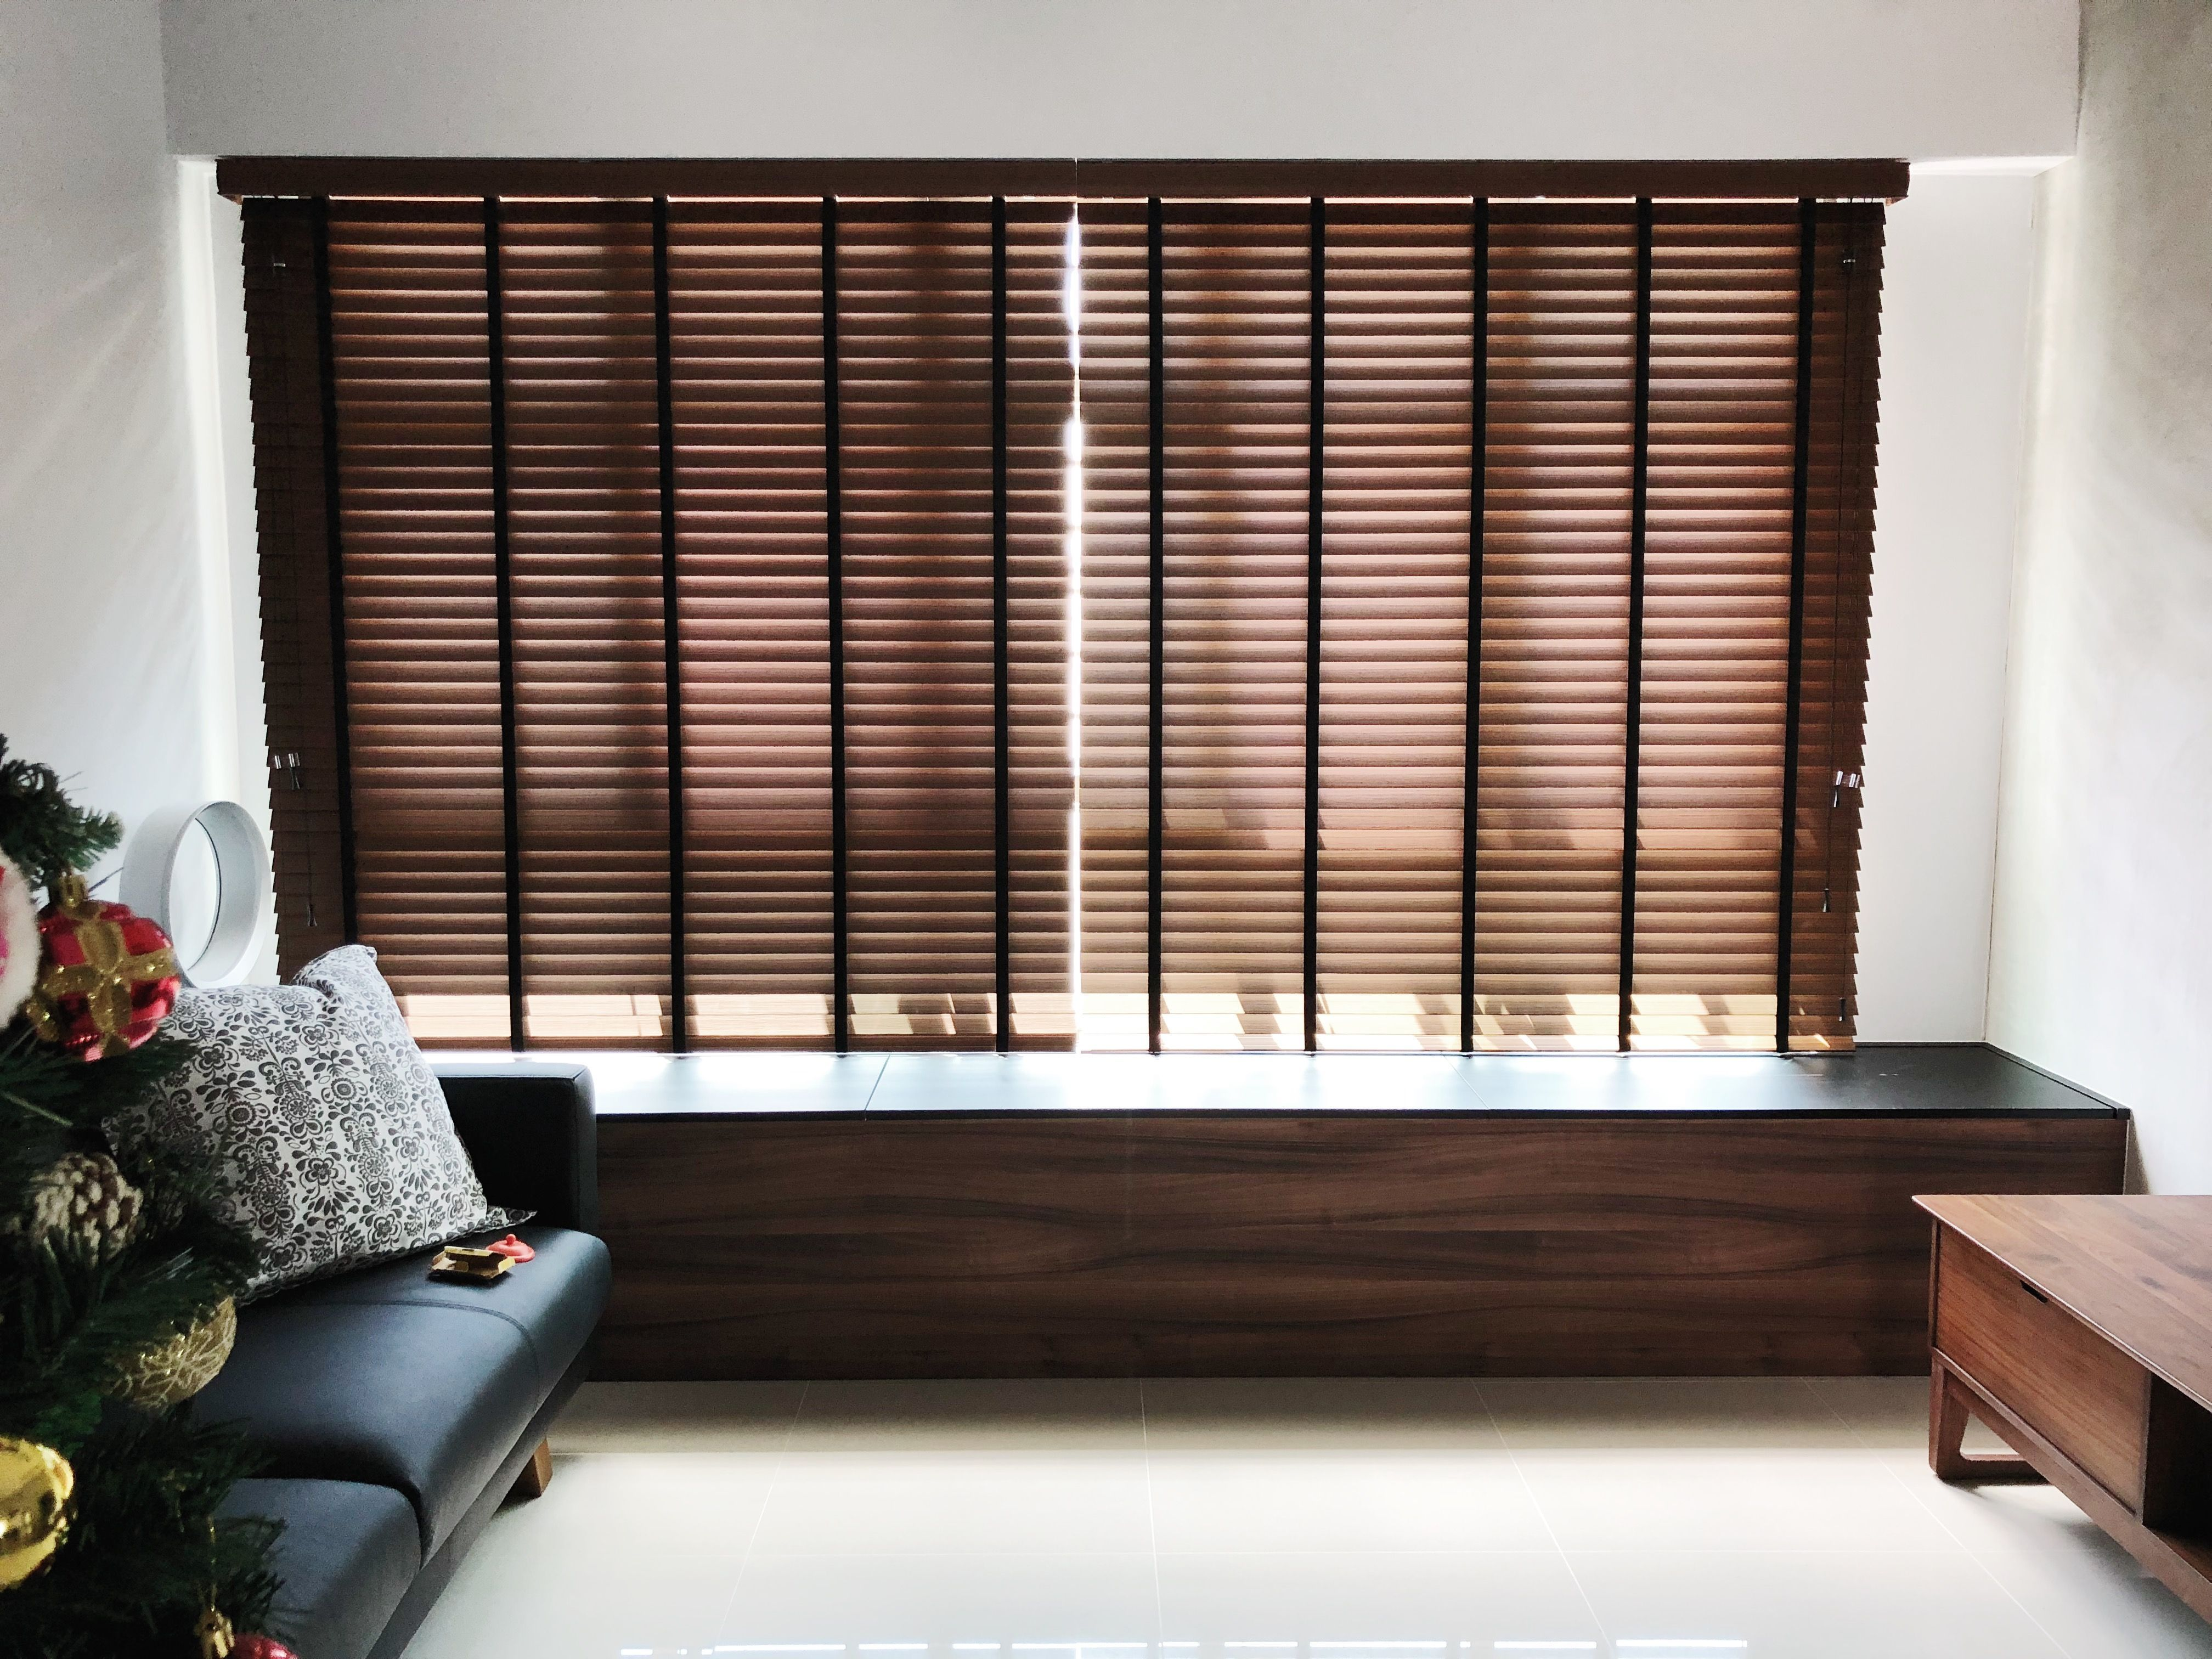 Brown Fauxwood Blinds With Black Tape Blinds Interior Design Mini Blinds